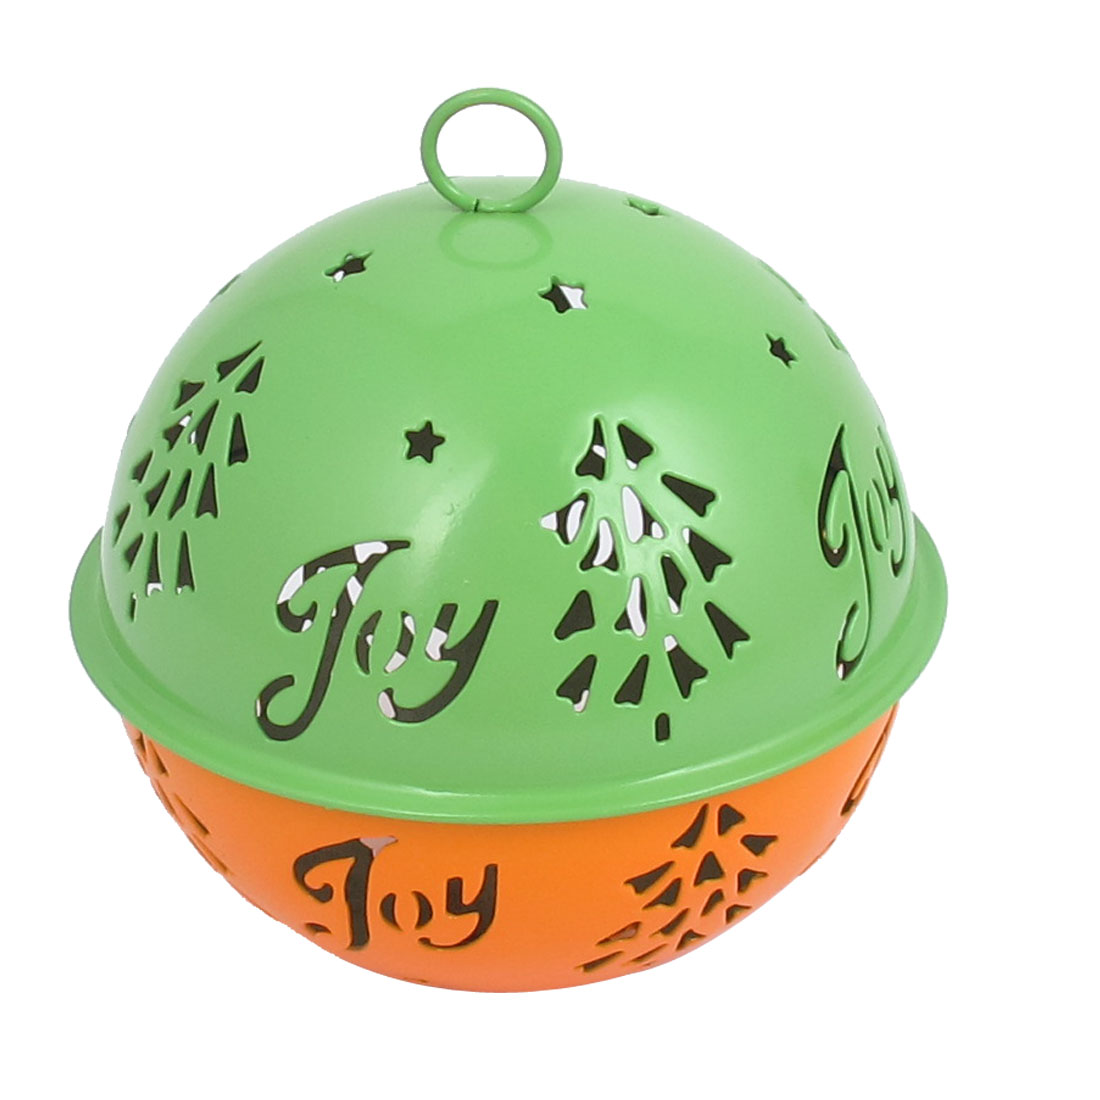 85mm Diameter Green Orange Metal Christmas Tree Detail Ball Shape Hollow Out Design Jingle Ring Bell Ornament for Celebration Case Party